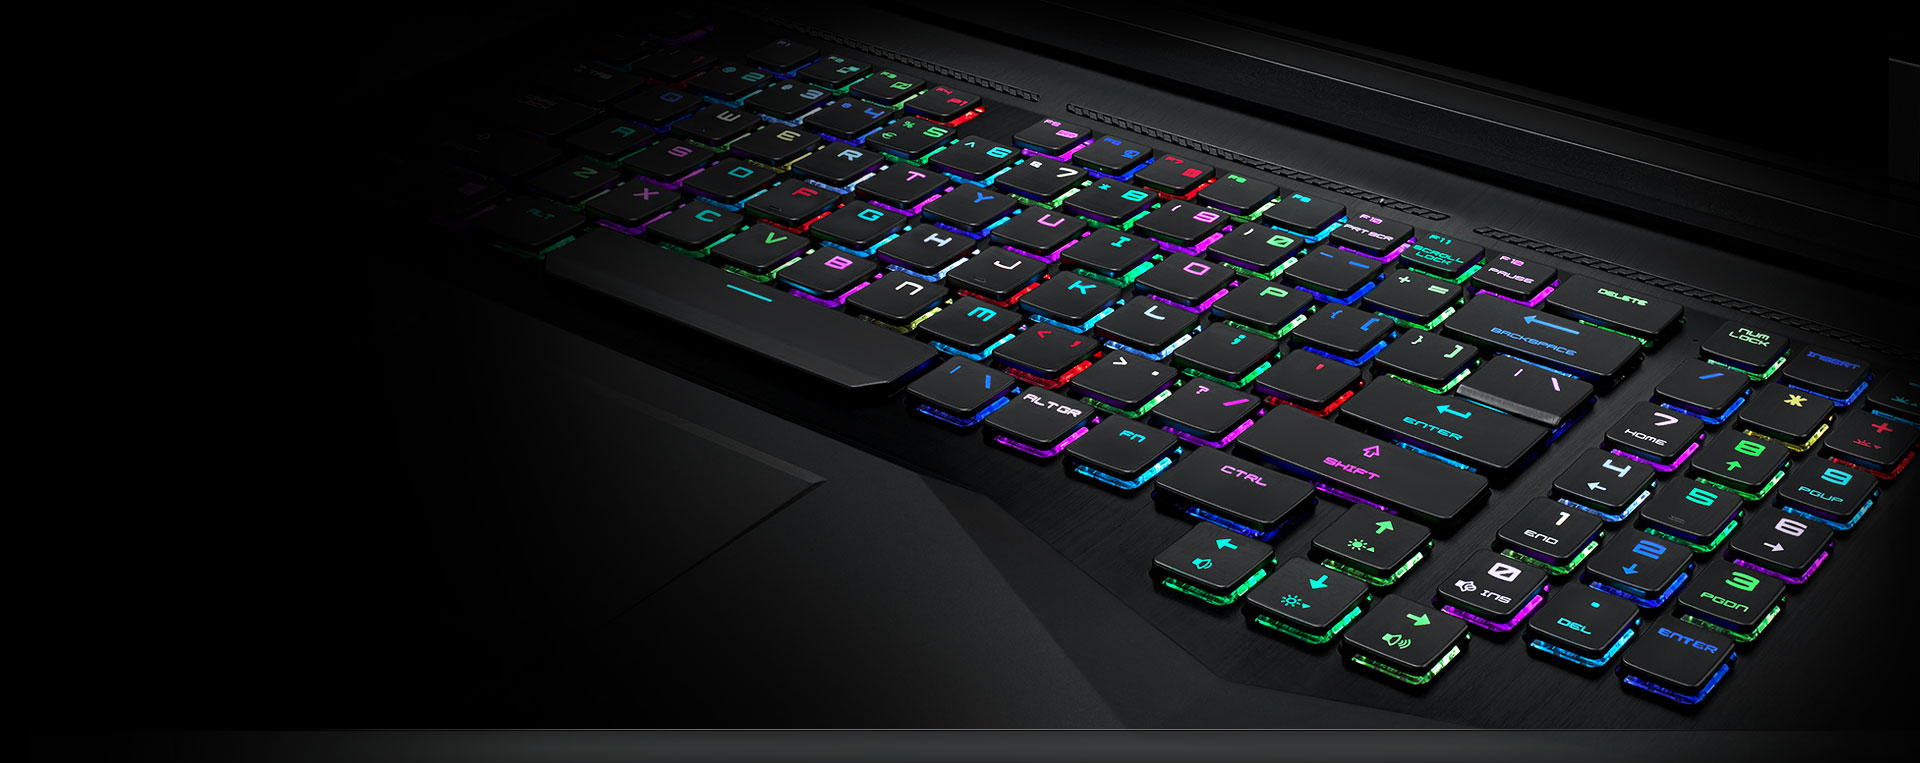 Msi Gt75 Titan 8rg Gaming Laptop Total Dominance Home Gt Structured Wiring Channel Vision Panels And Gt75keyboard